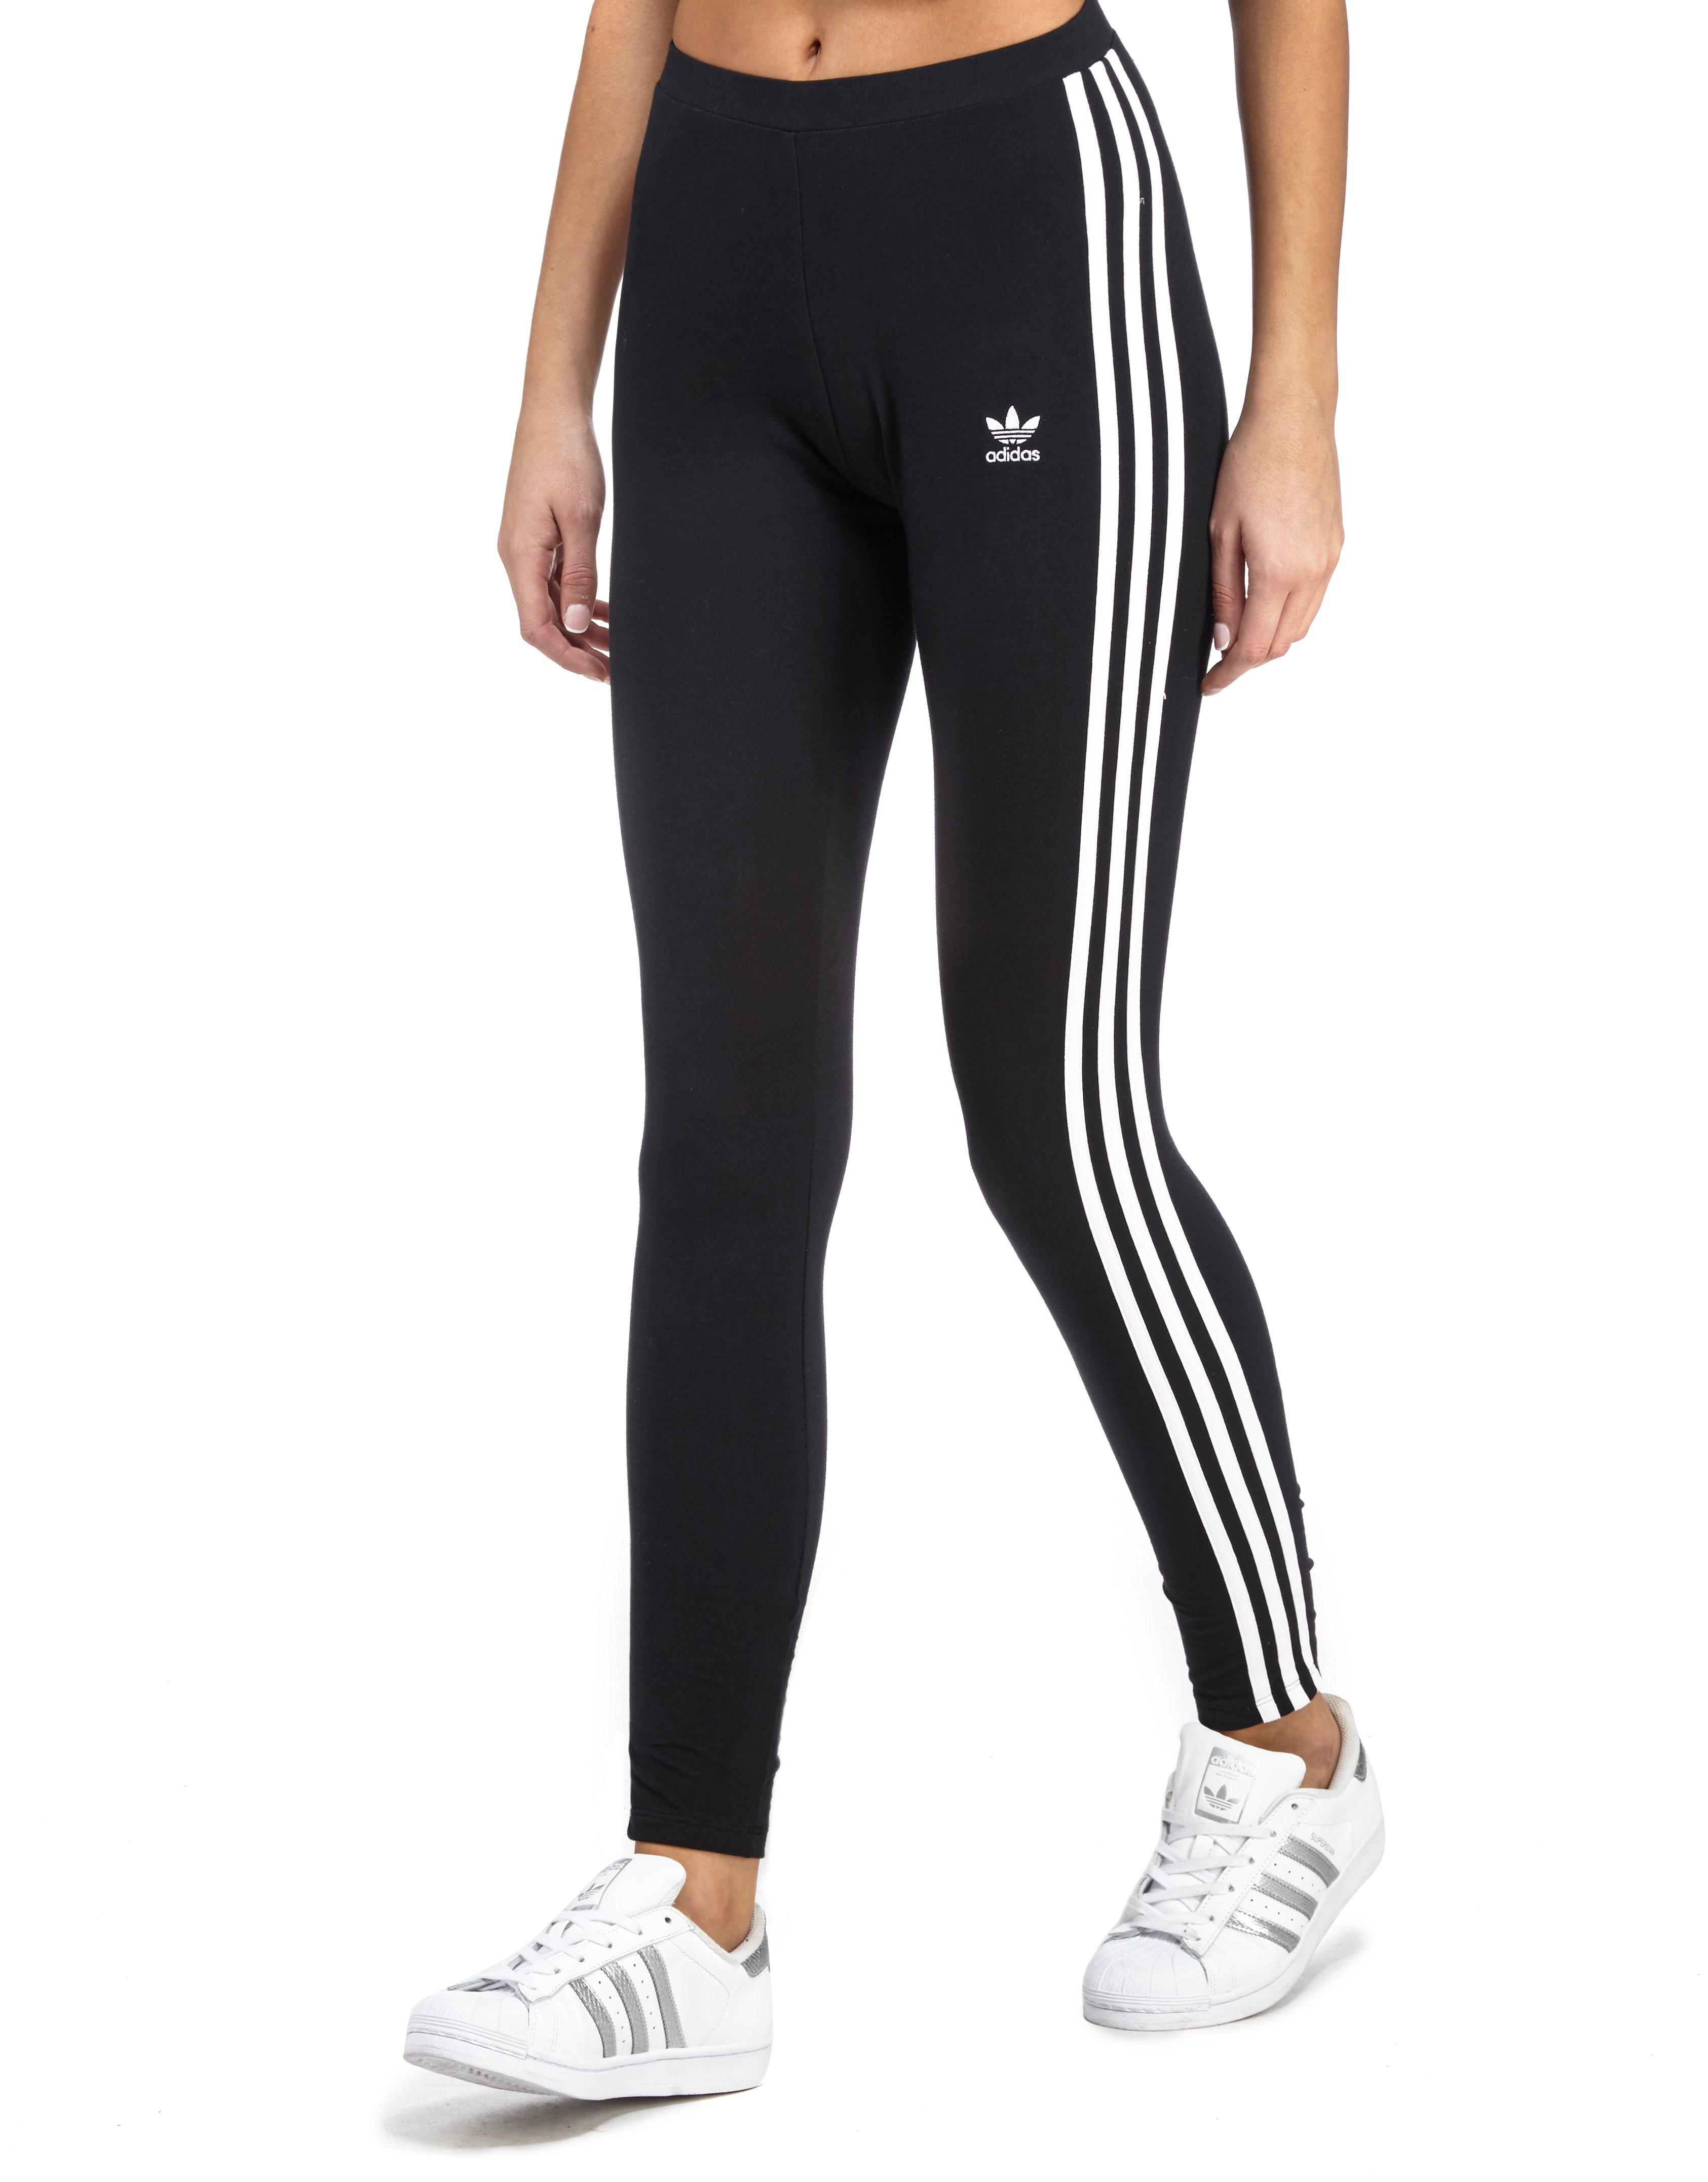 jd_025579_a?qlt=80 womens adidas originals trainers, clothing & accessories at jd sports,Womens Clothing Adidas